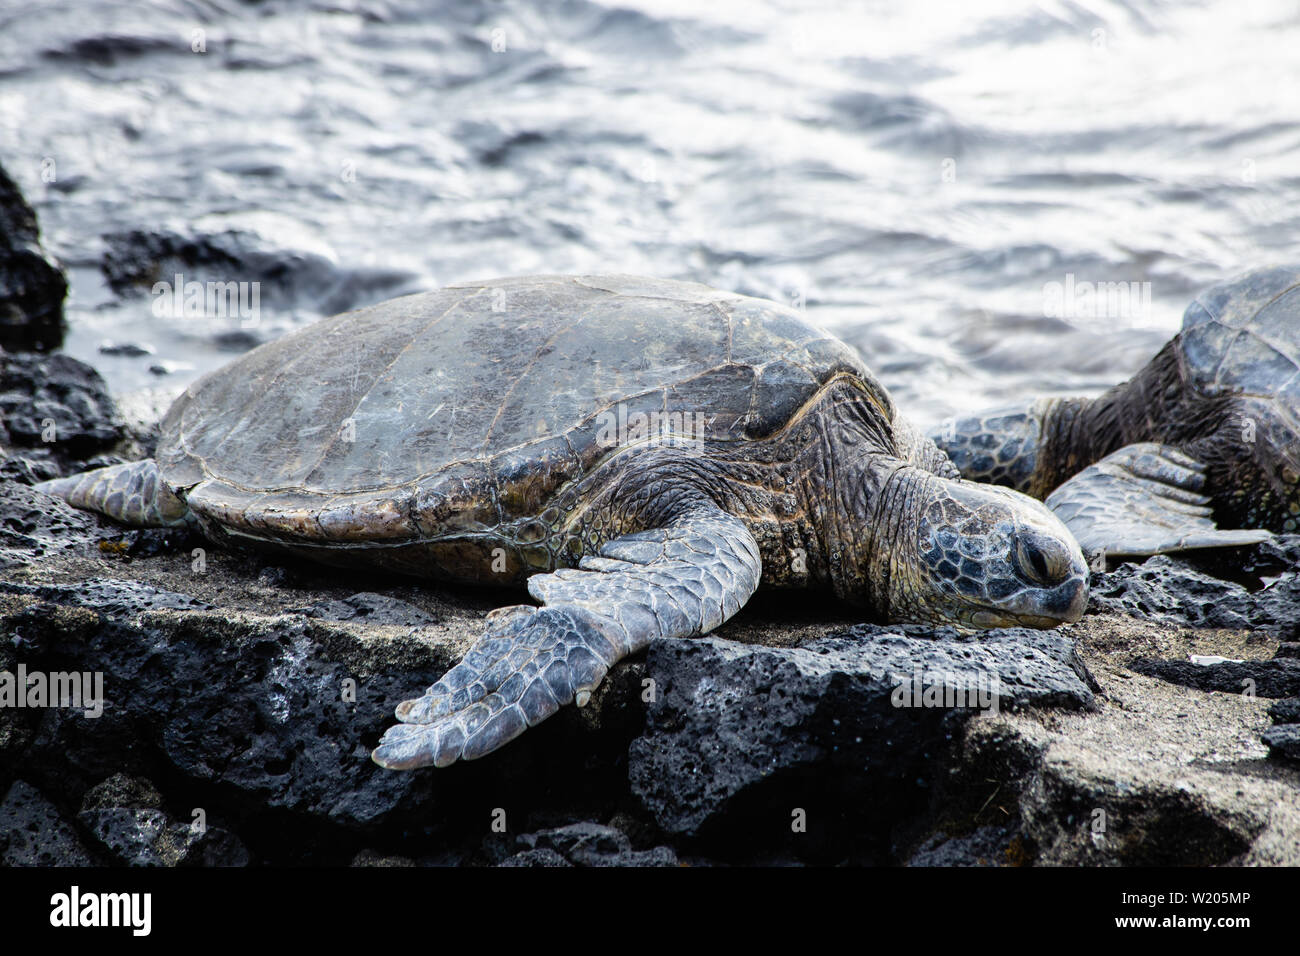 Endangered sea turtles sunning themselves on a rocky shoreline Stock Photo